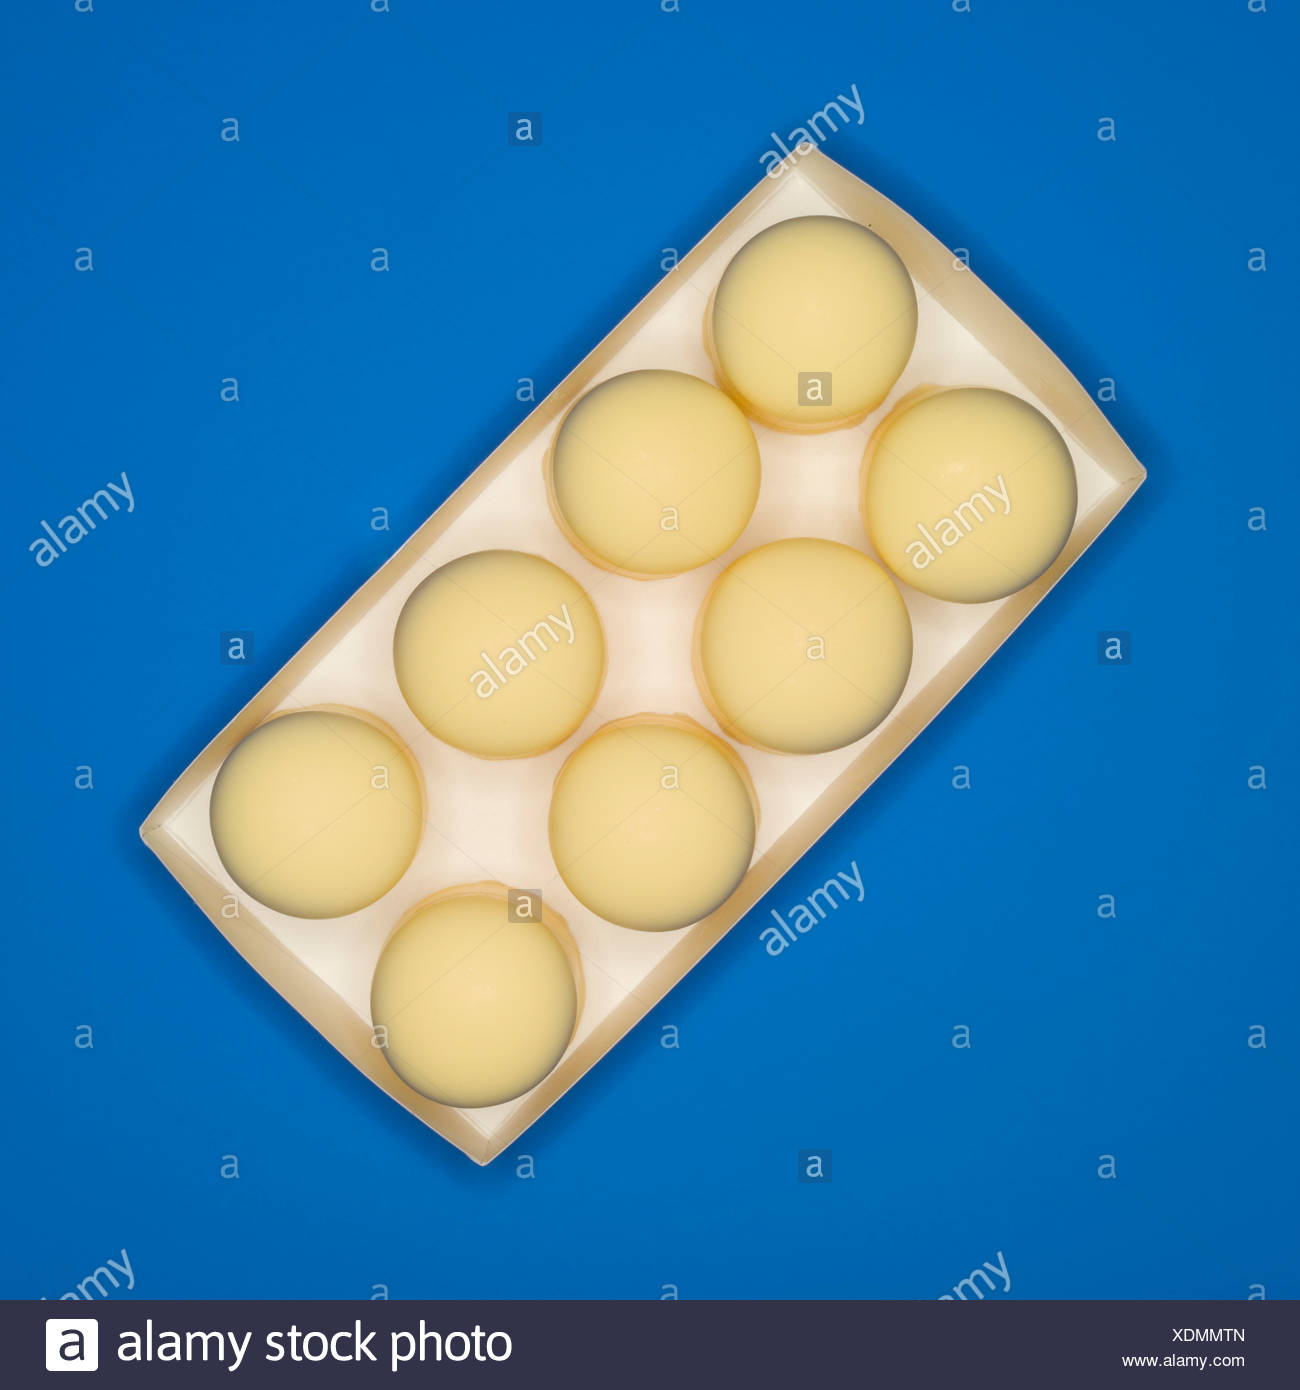 Confectionary, traditional German candy, elevated view - Stock Image